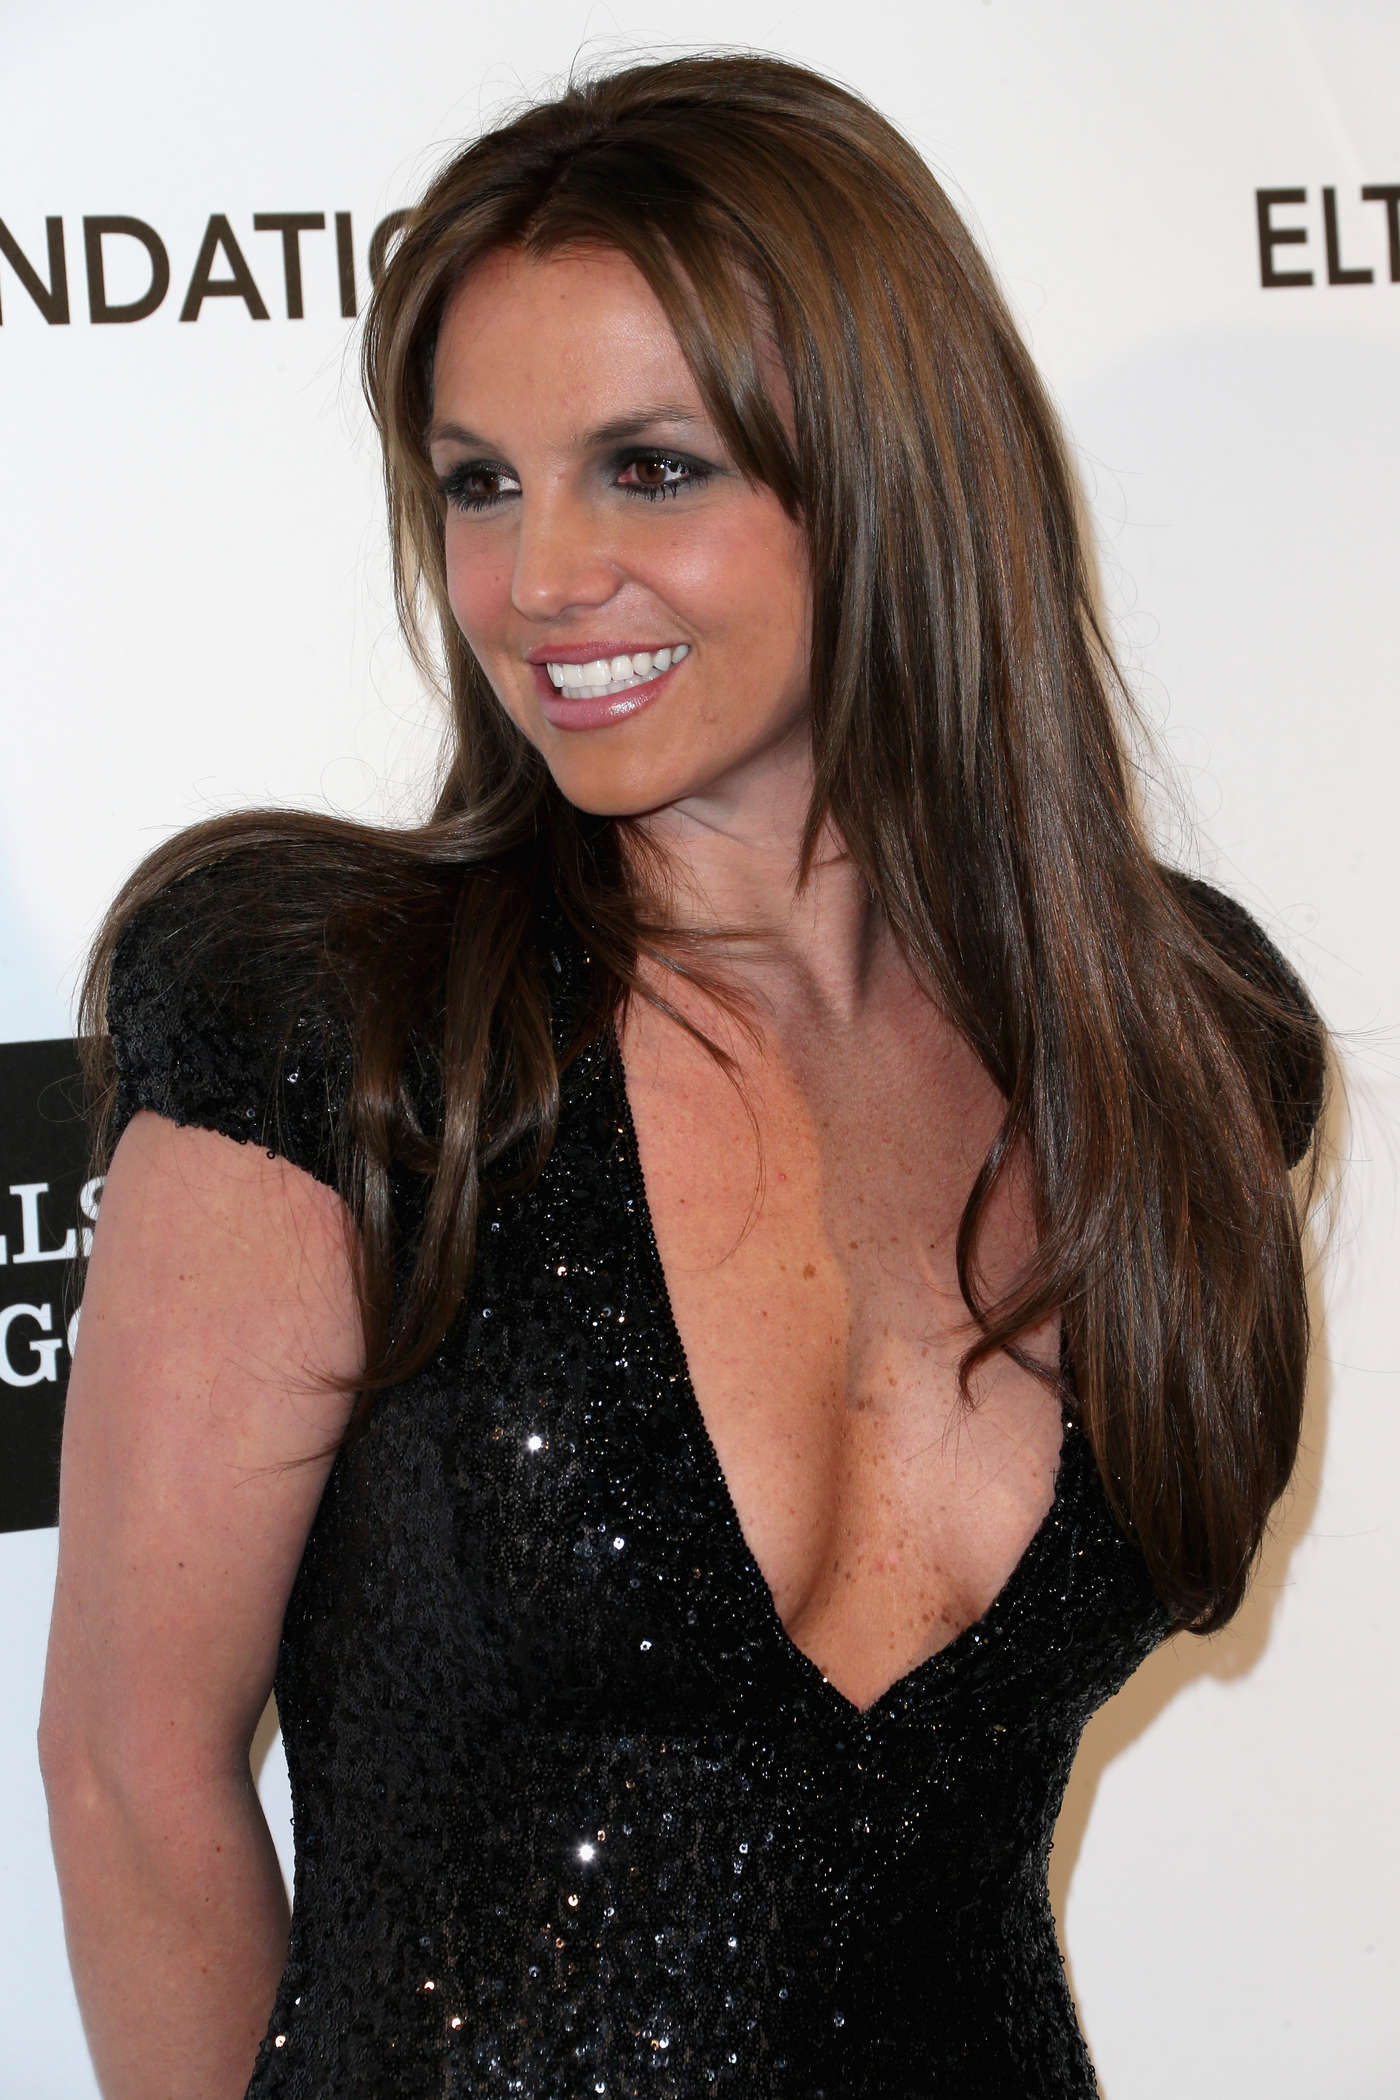 Who is britney spears dating 2013